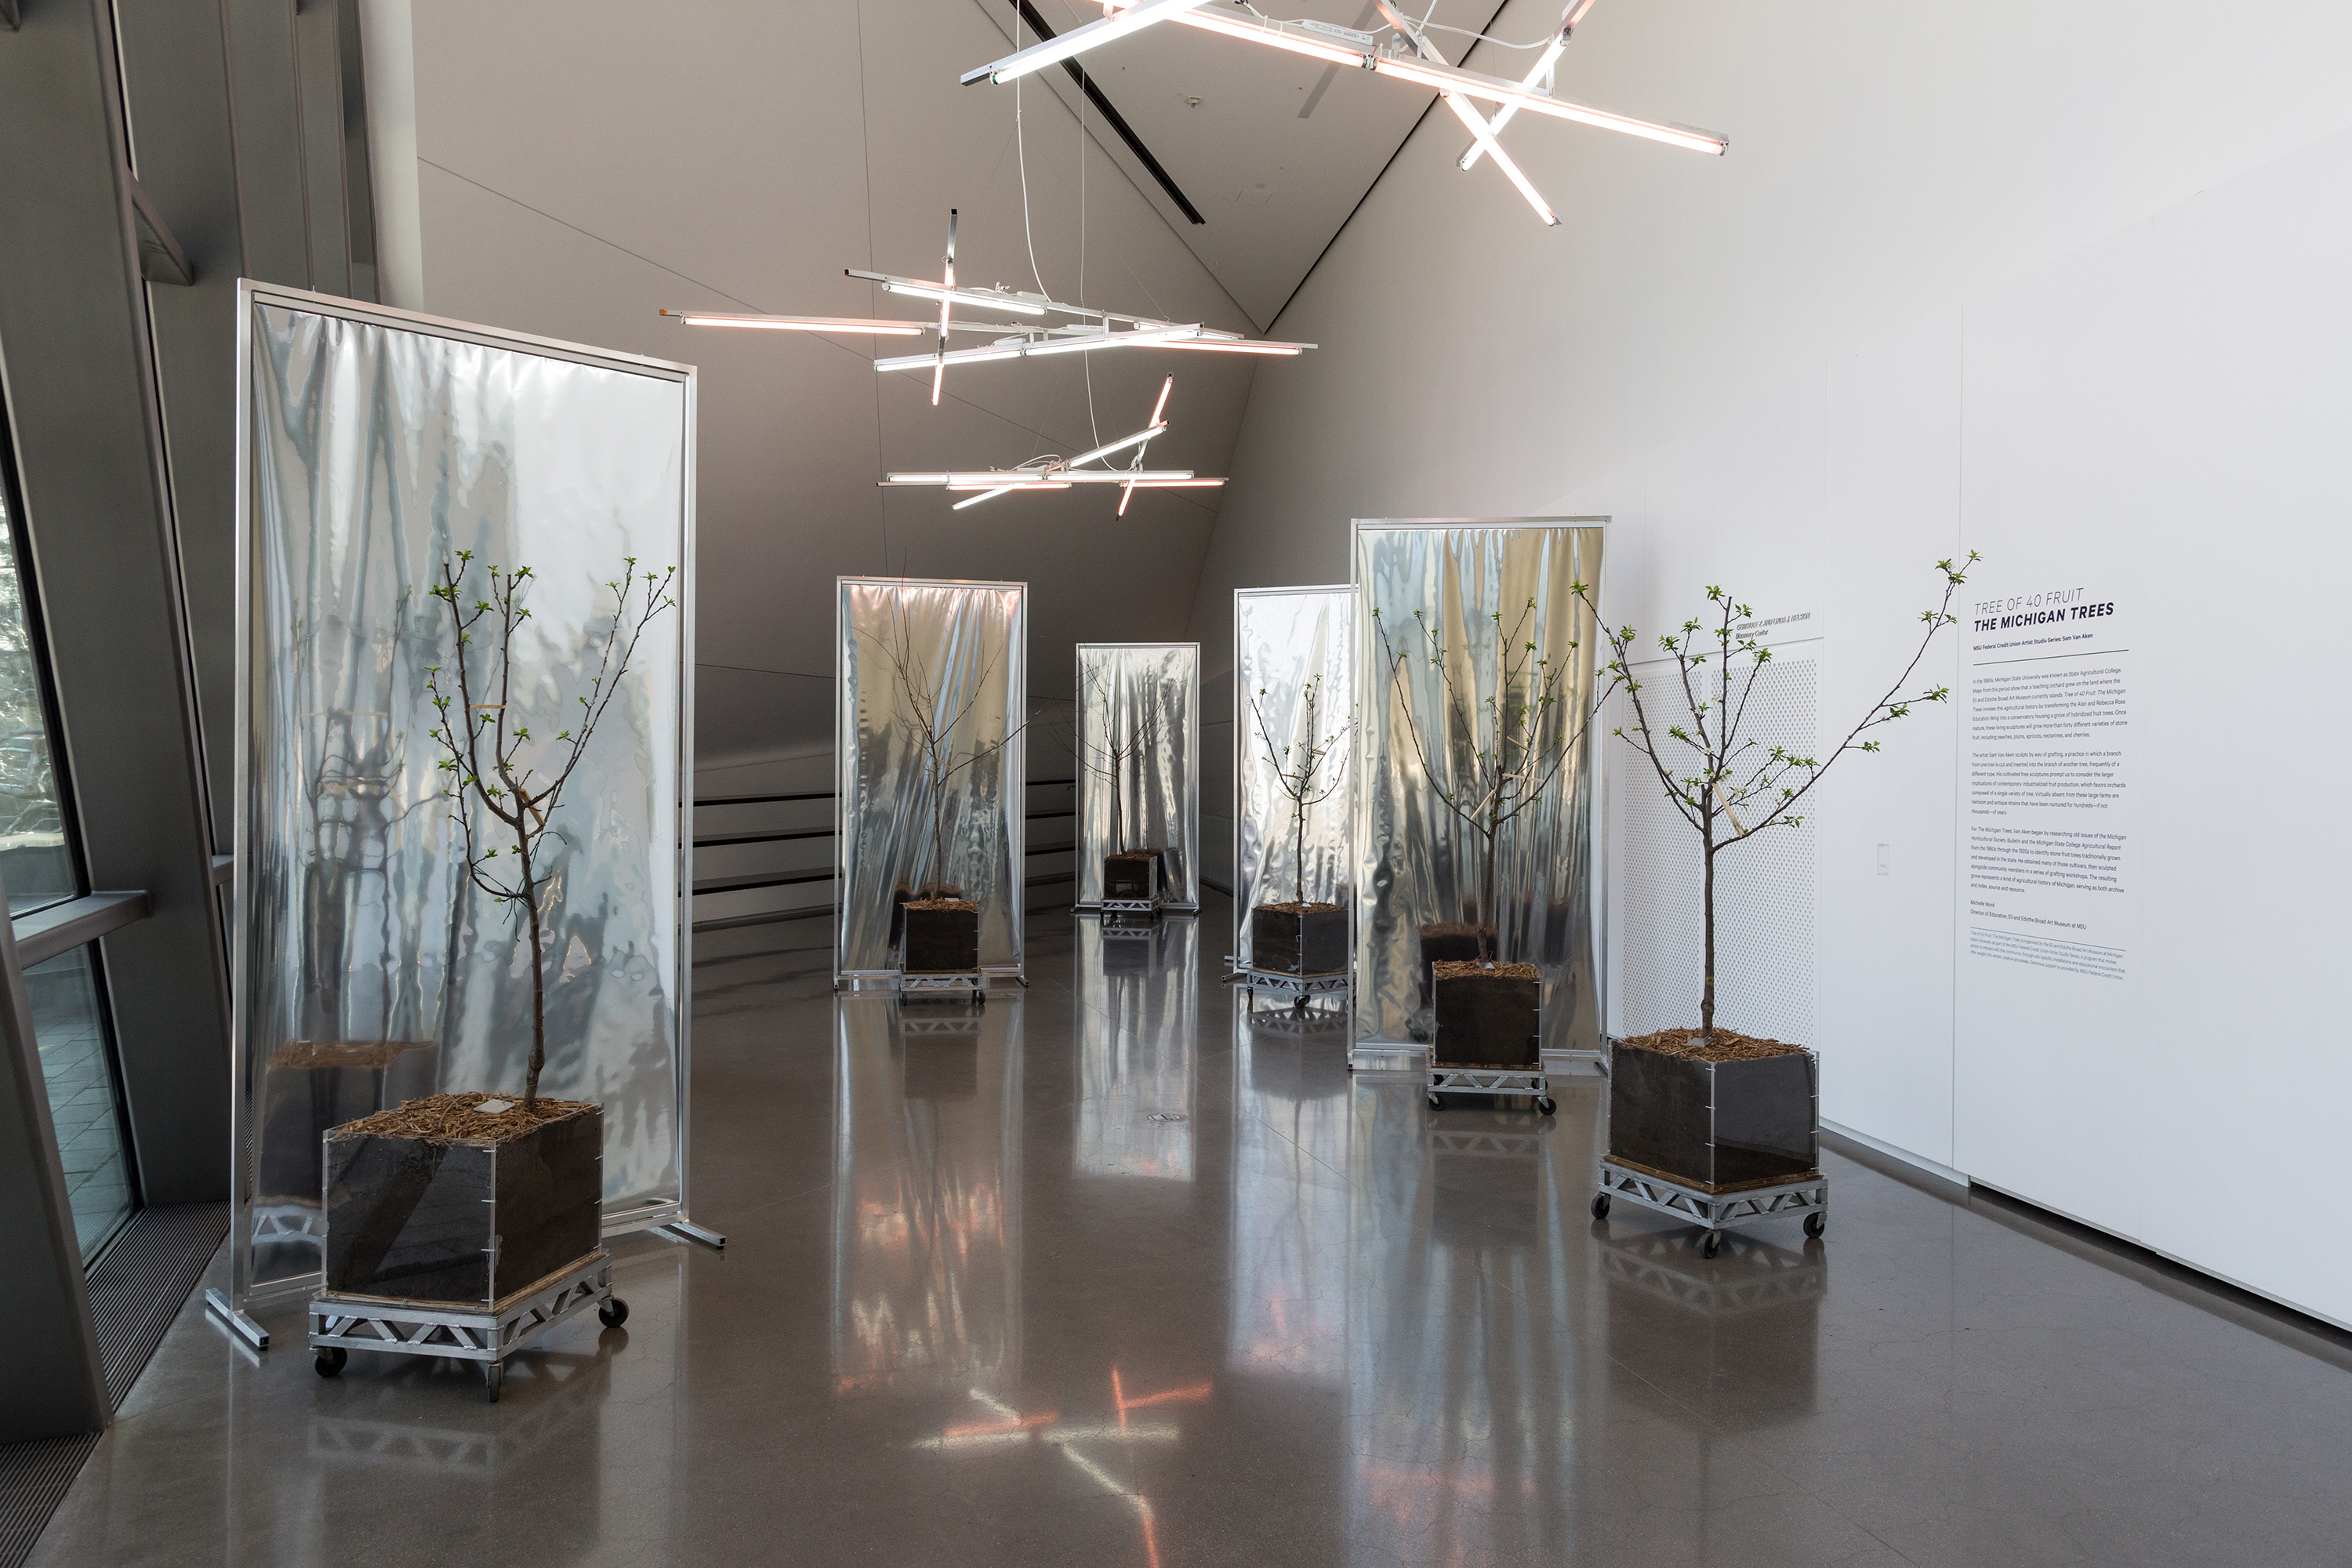 <i>Tree of 40 Fruit: The Michigan Trees</i>, installation view at the Eli and Edythe Broad Art Museum at Michigan State University, 2016. Photo: Eat Pomegranate Photography